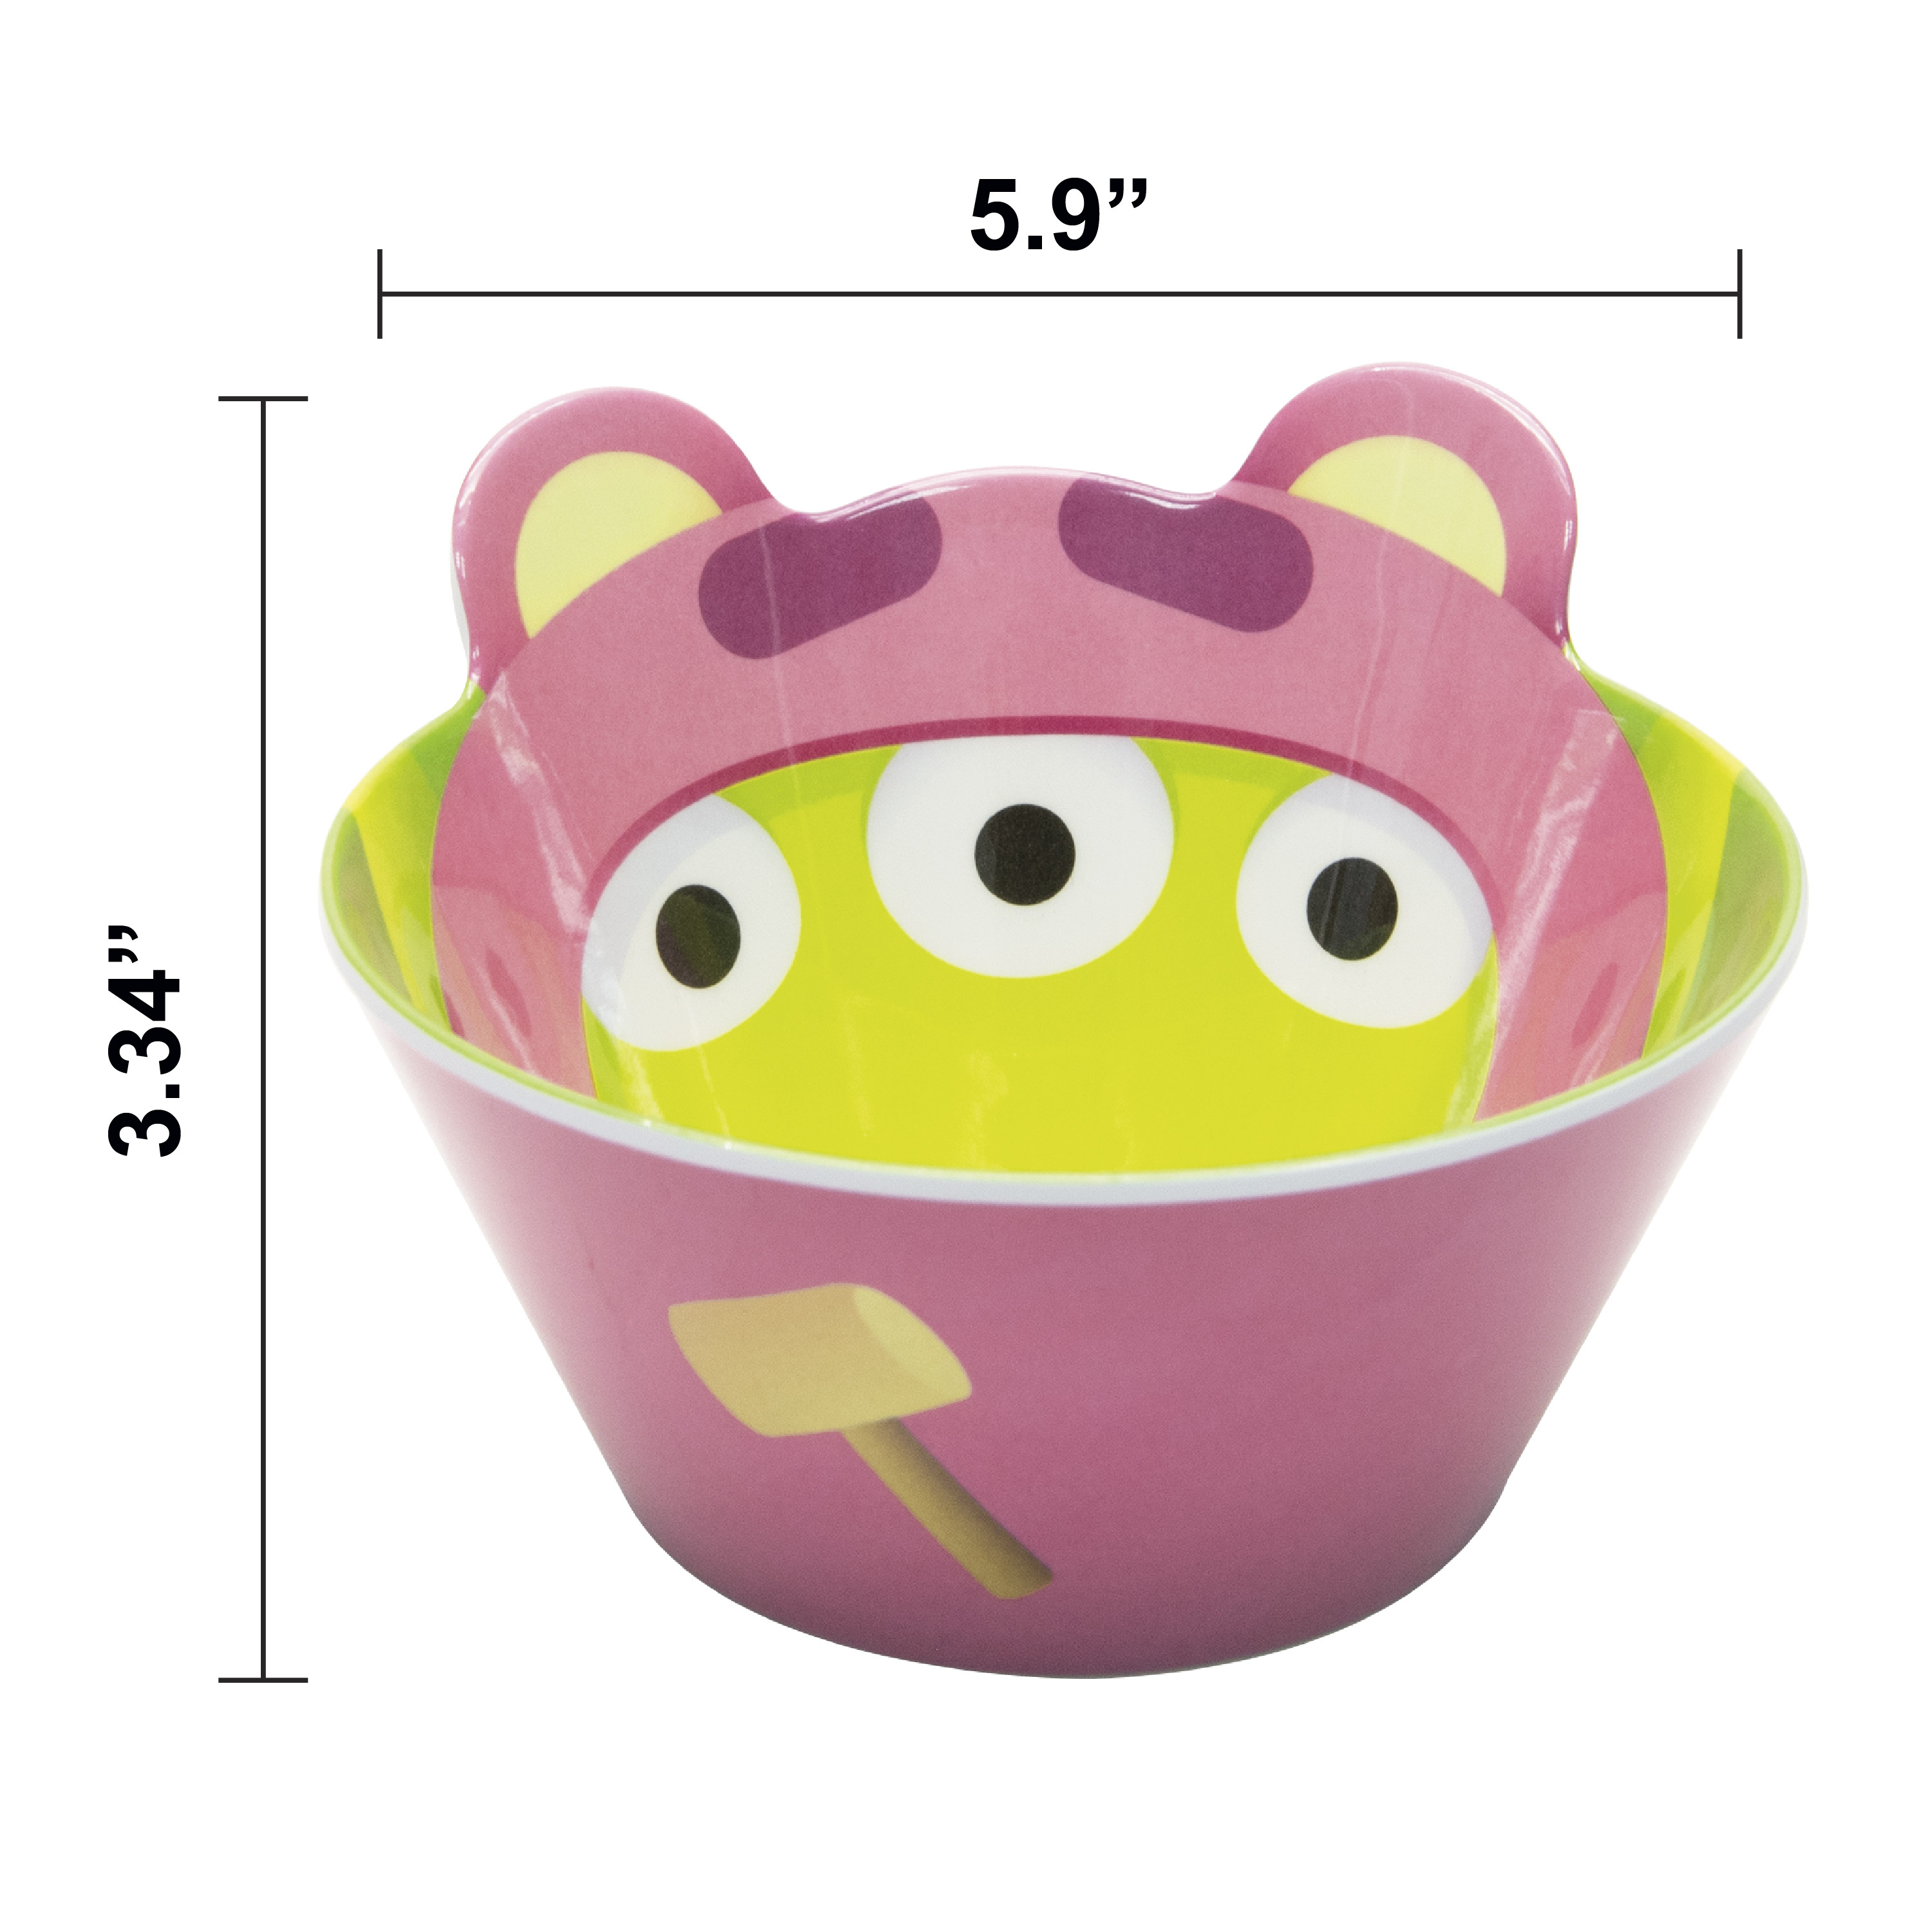 Disney and Pixar Toy Story 4 Plate and Bowl Set, Lotso, 2-piece set slideshow image 7